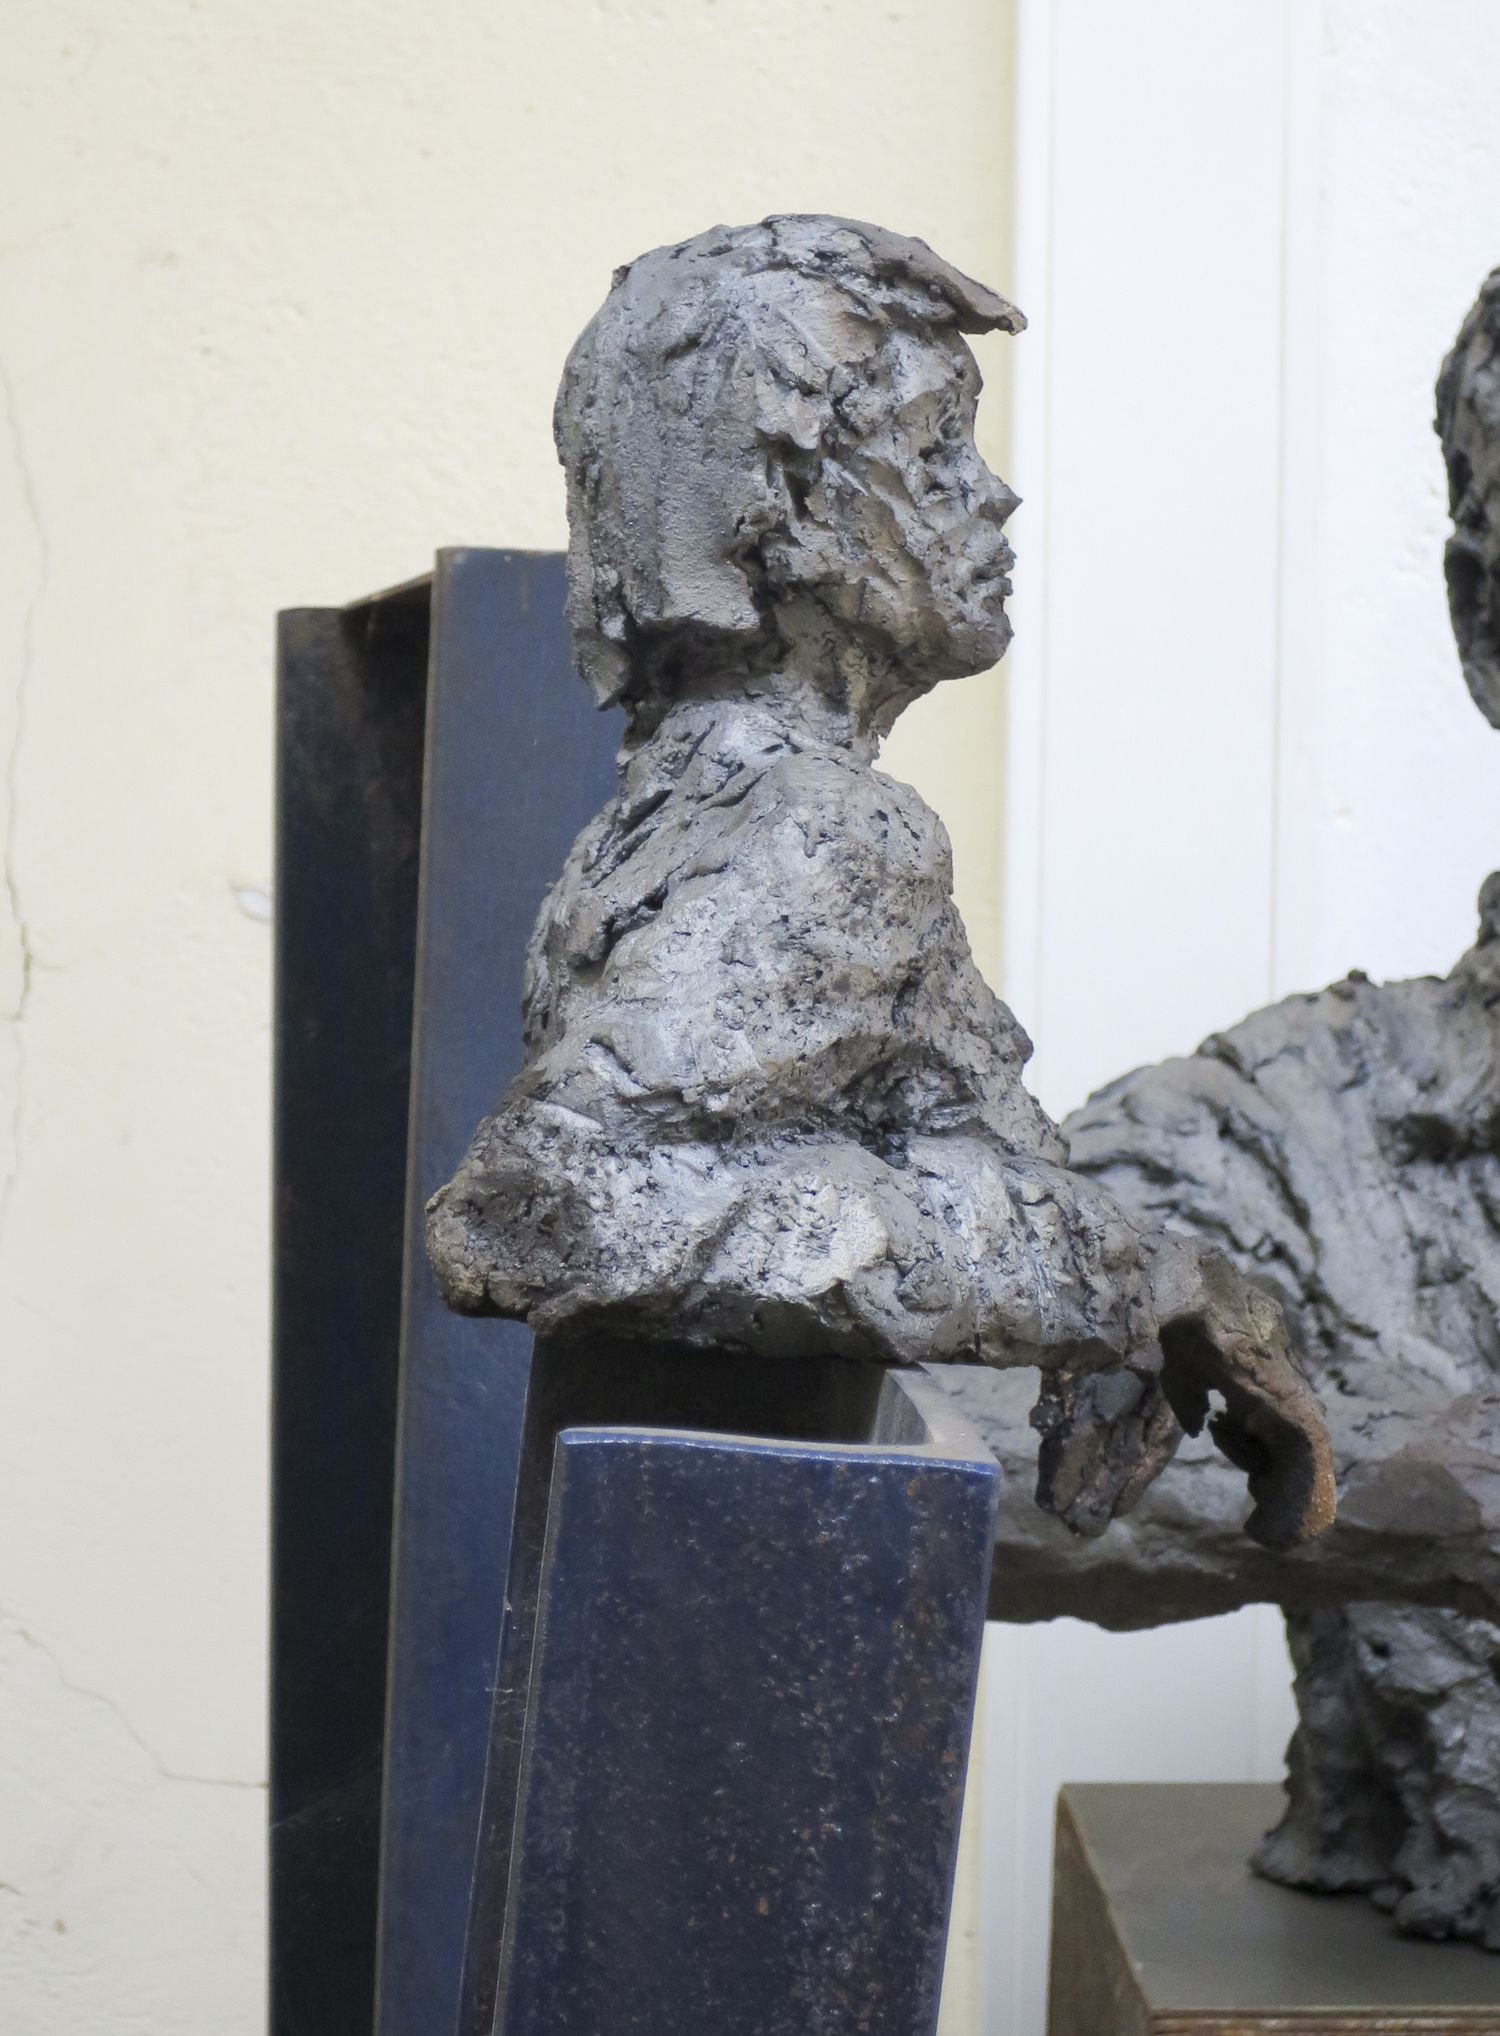 OFW's/Hom's II,Cécile Raynal,Sculpture, detail 1